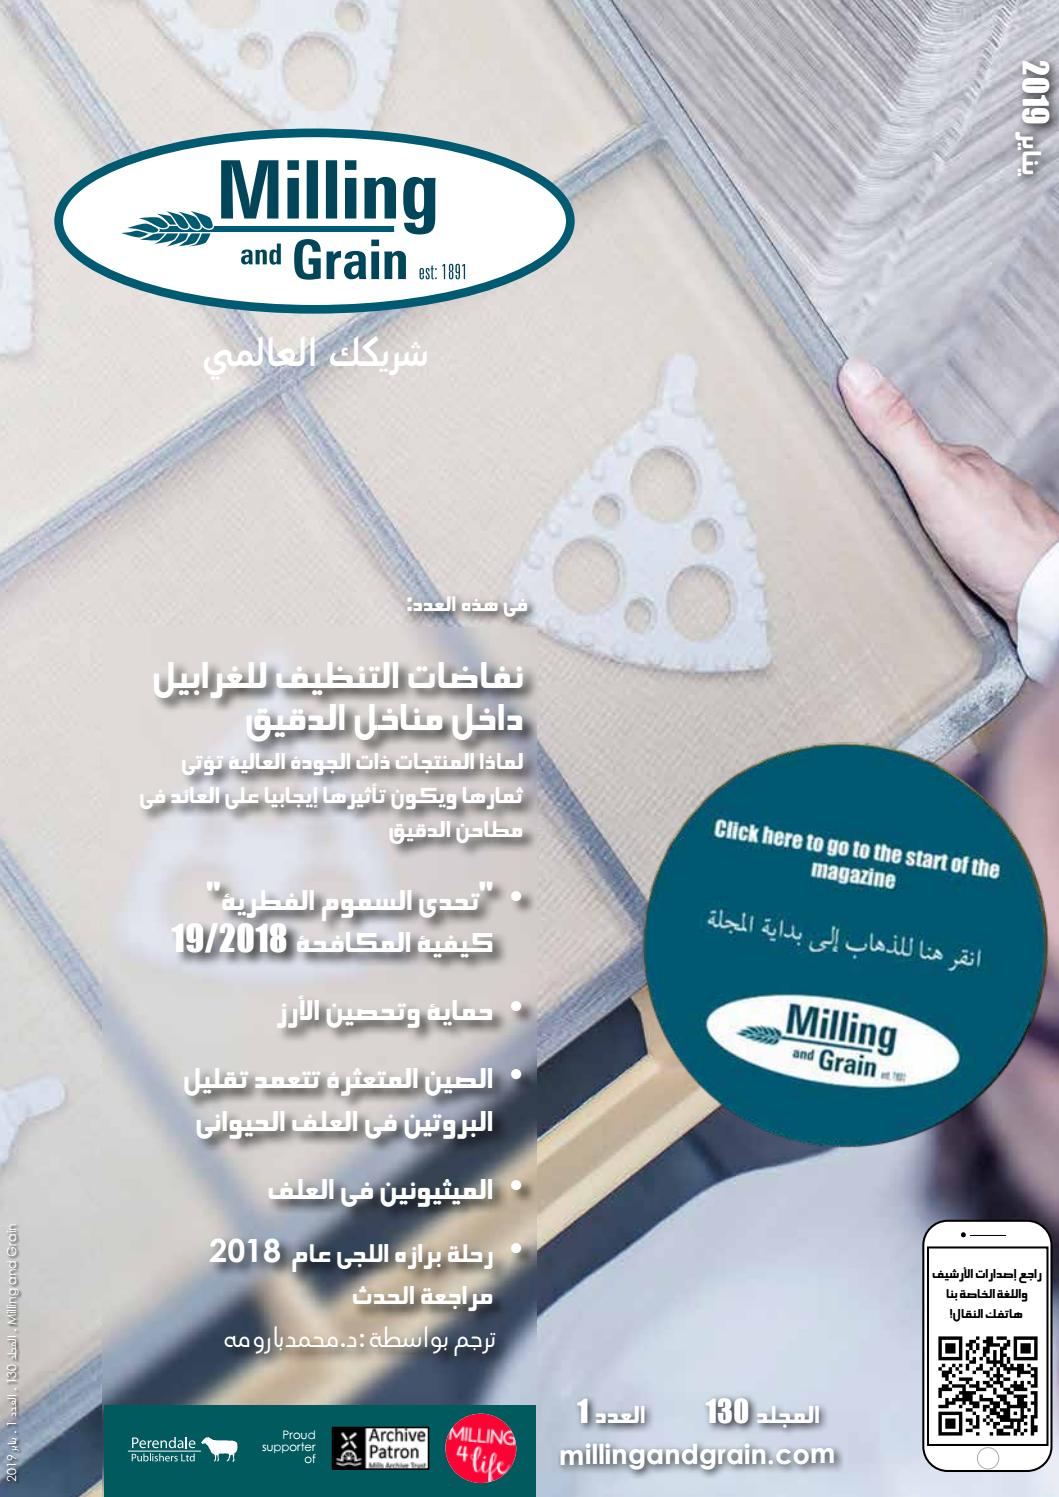 440078af0 ARABIC LANGUAGE EDITION - Milling and Grain - Issue 1 - 2019 by Perendale  Publishers - issuu